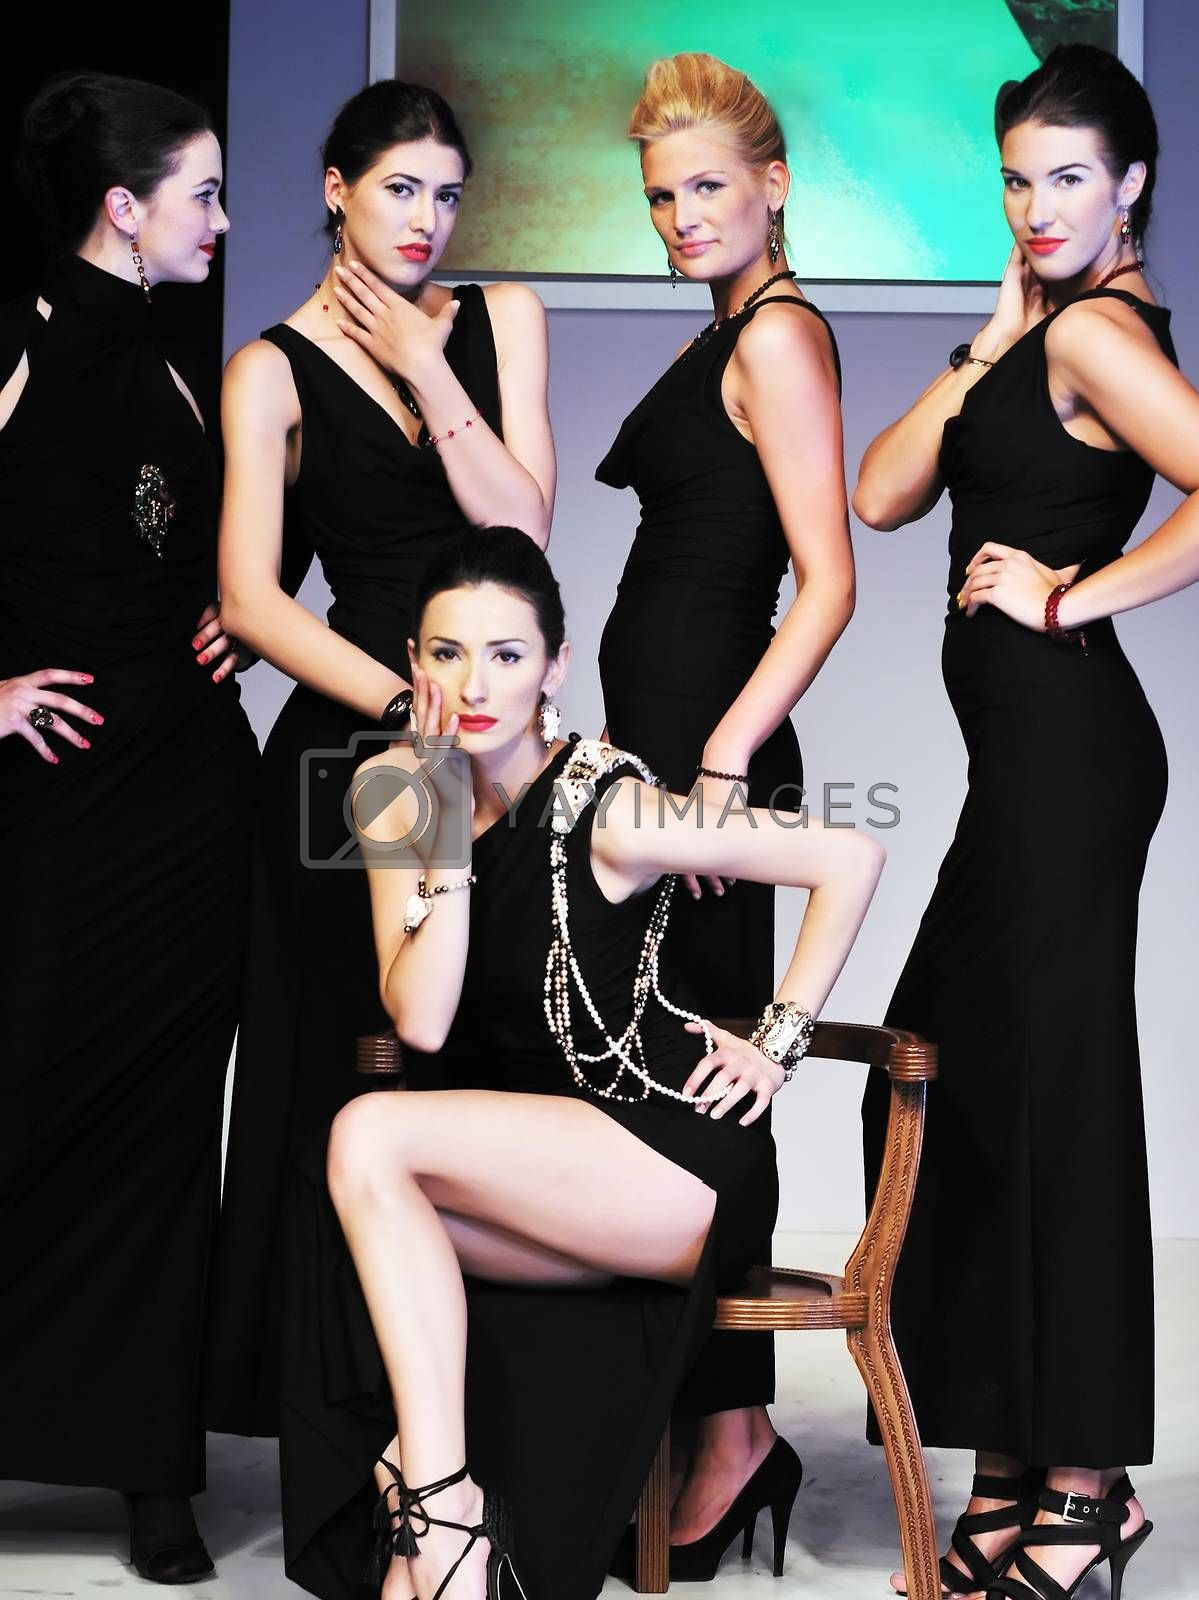 young models group posing on fashion show piste